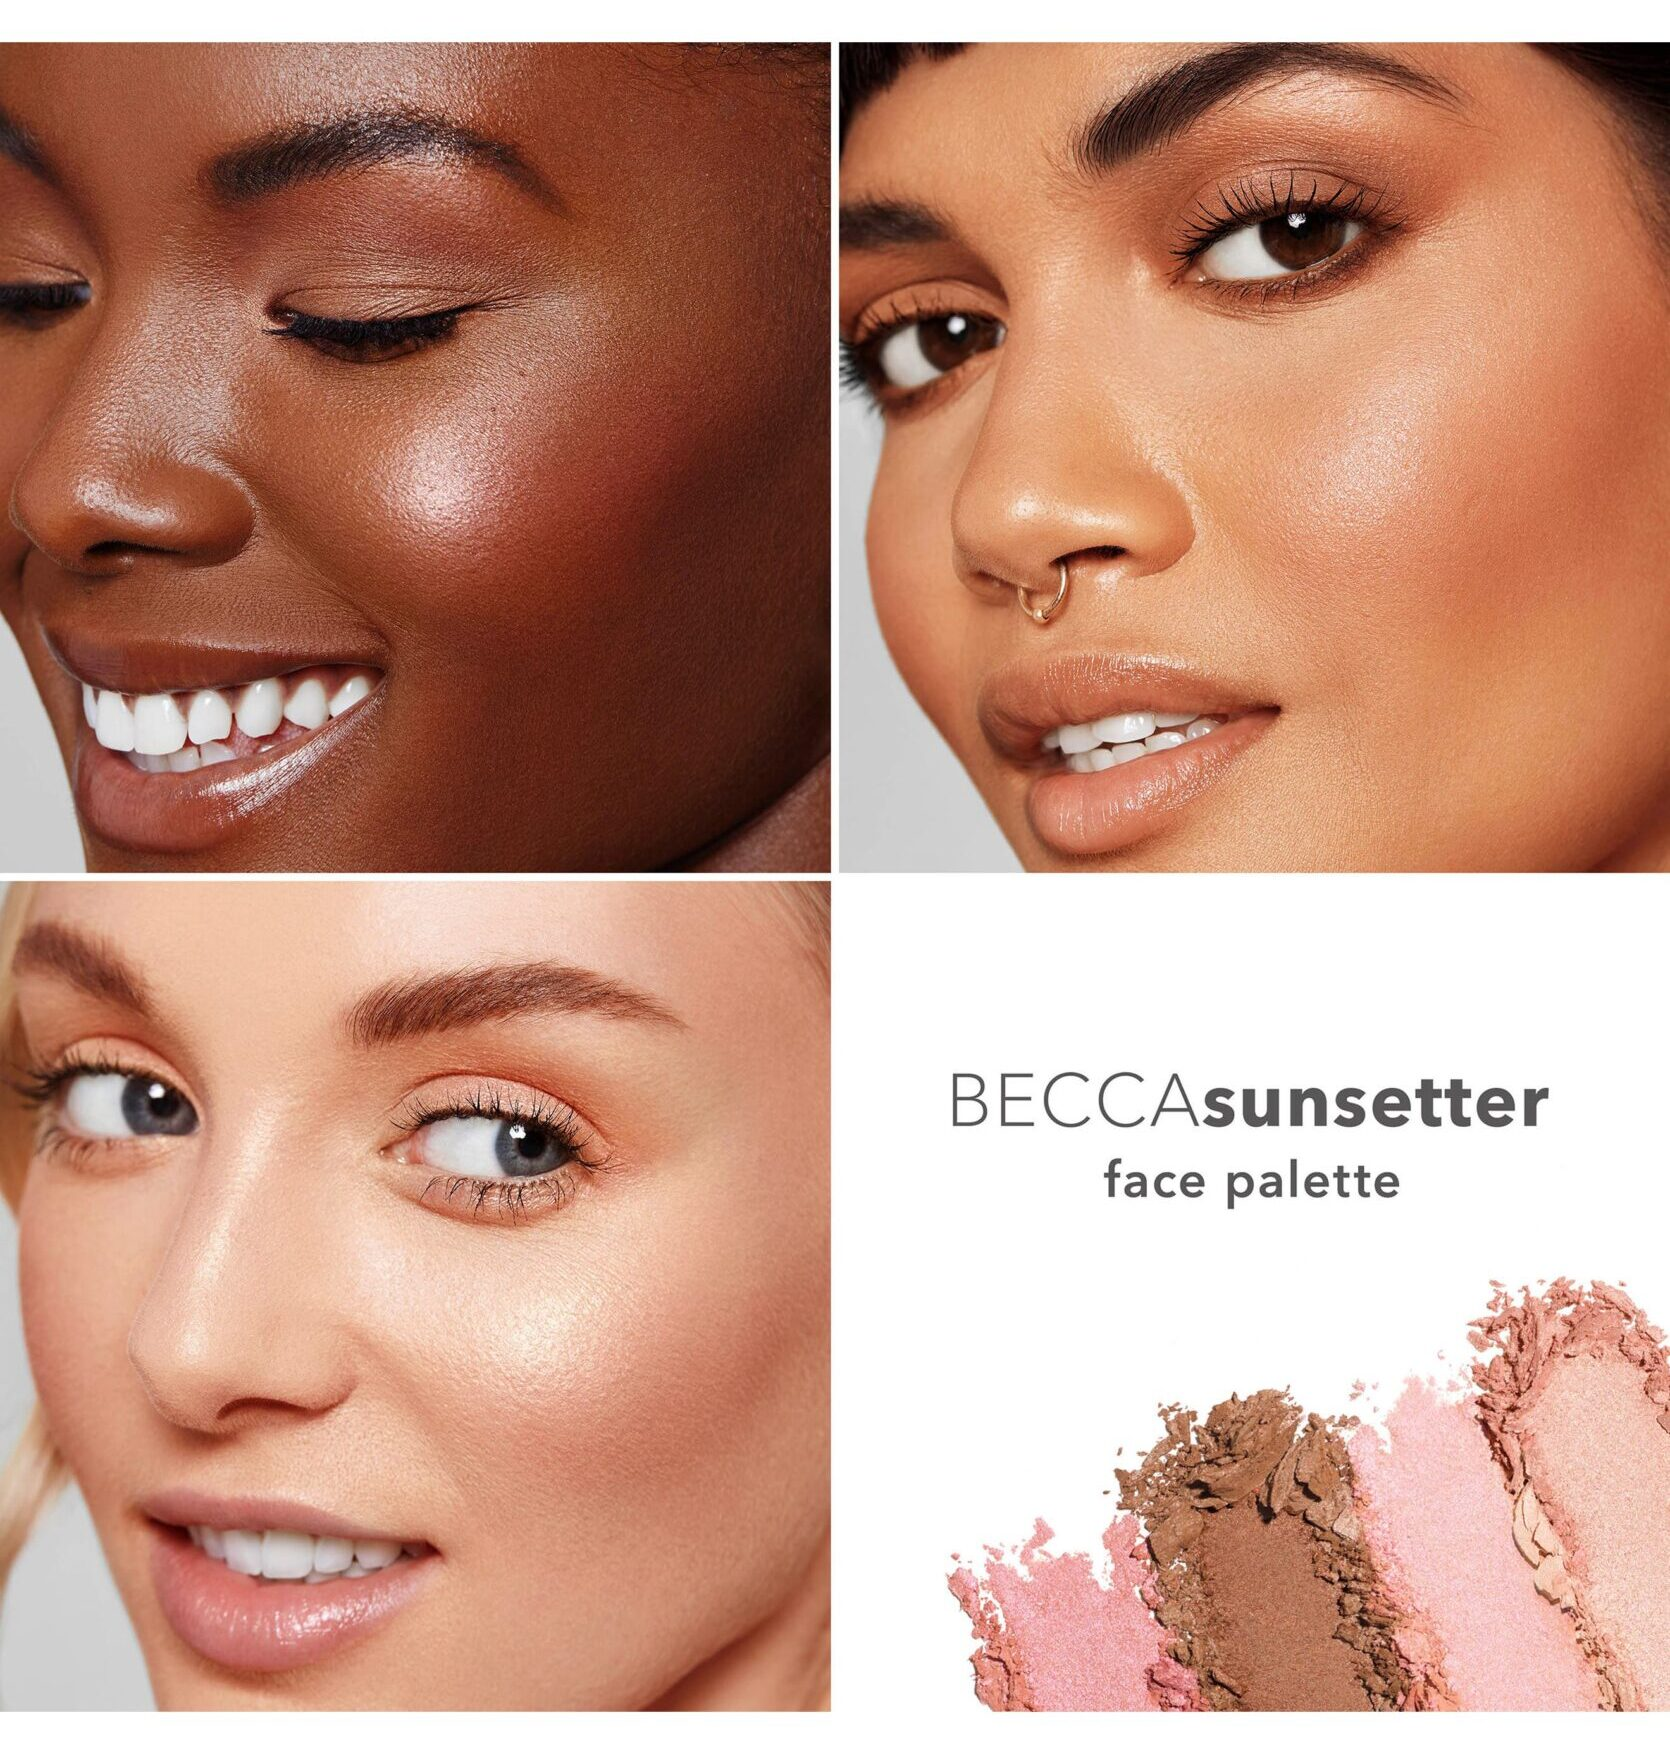 Becca Sunsetter Face Palette Exclusive Reveal!